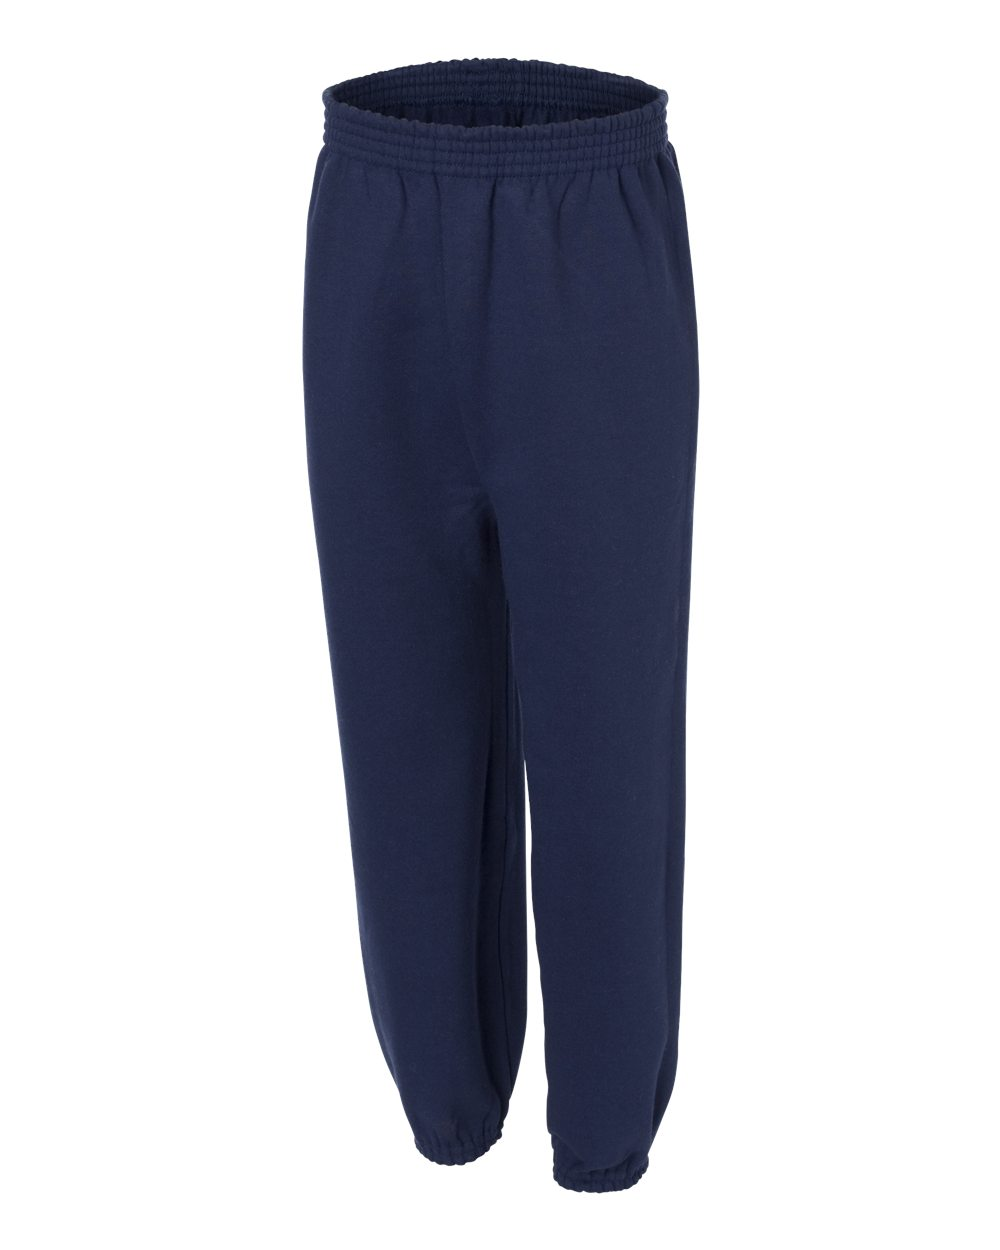 Hanes P450 - ComfortBlend EcoSmart Youth Sweatpants